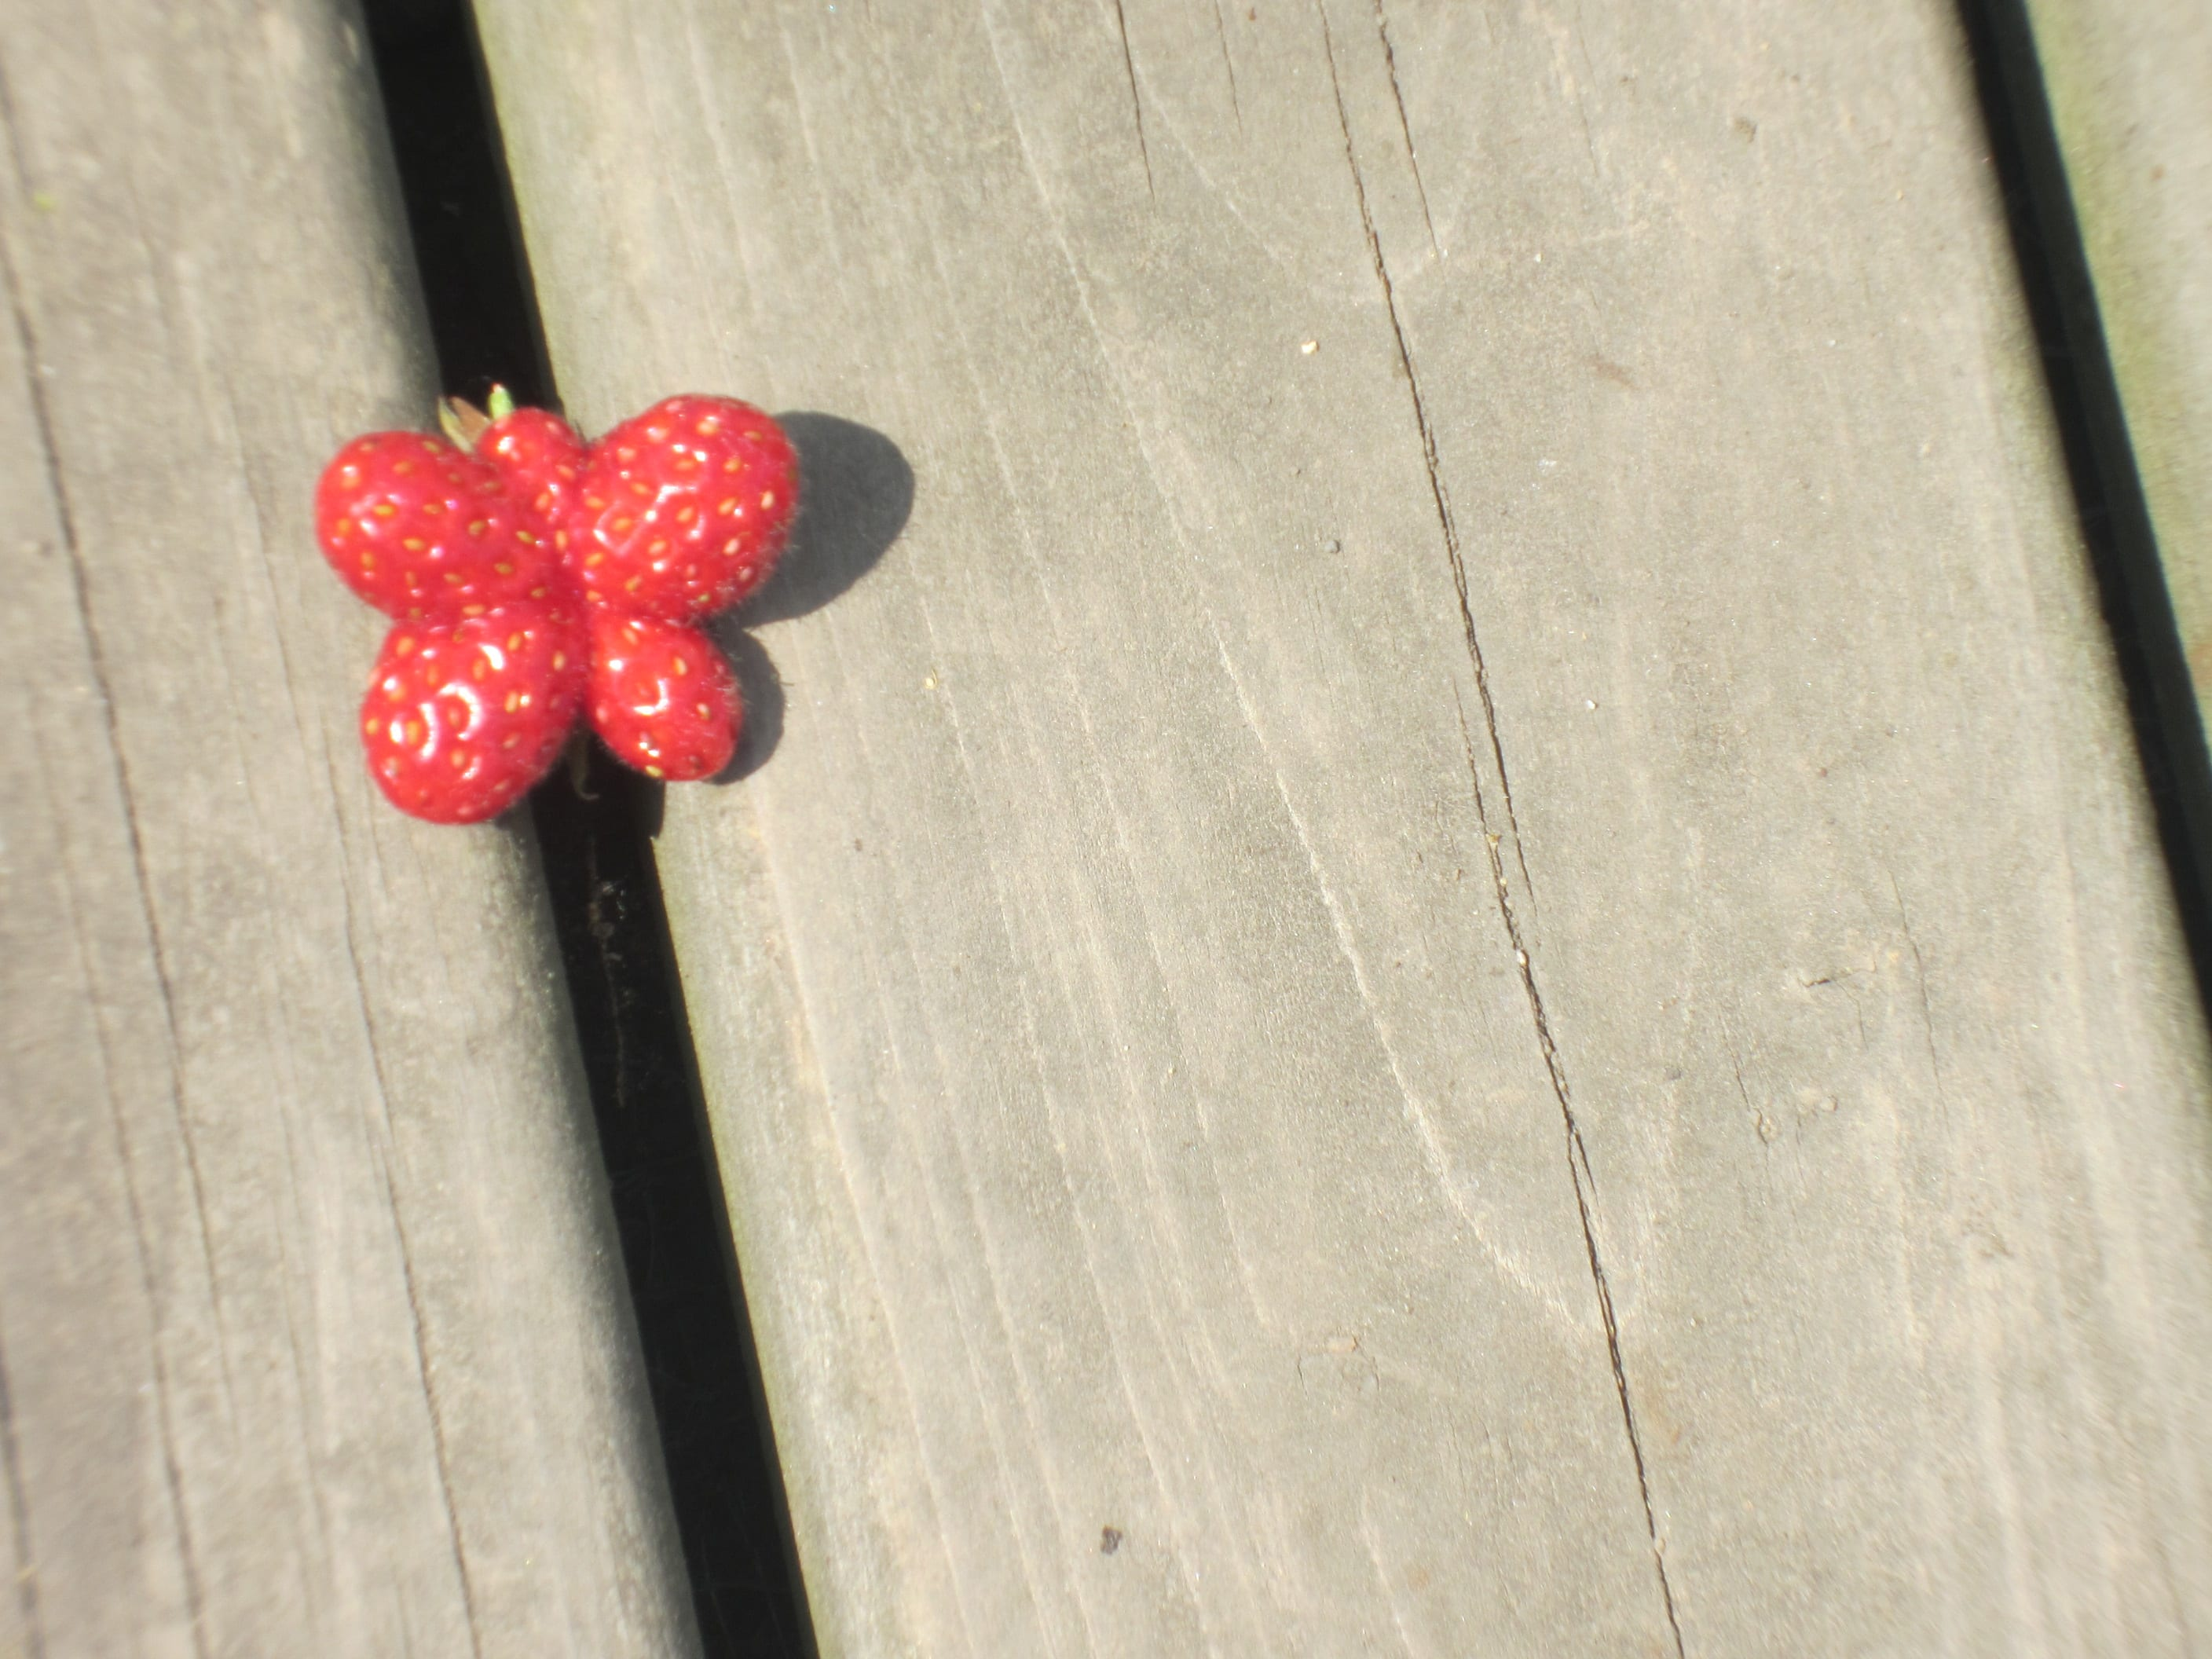 image of a strawberry shaped like a butterfly